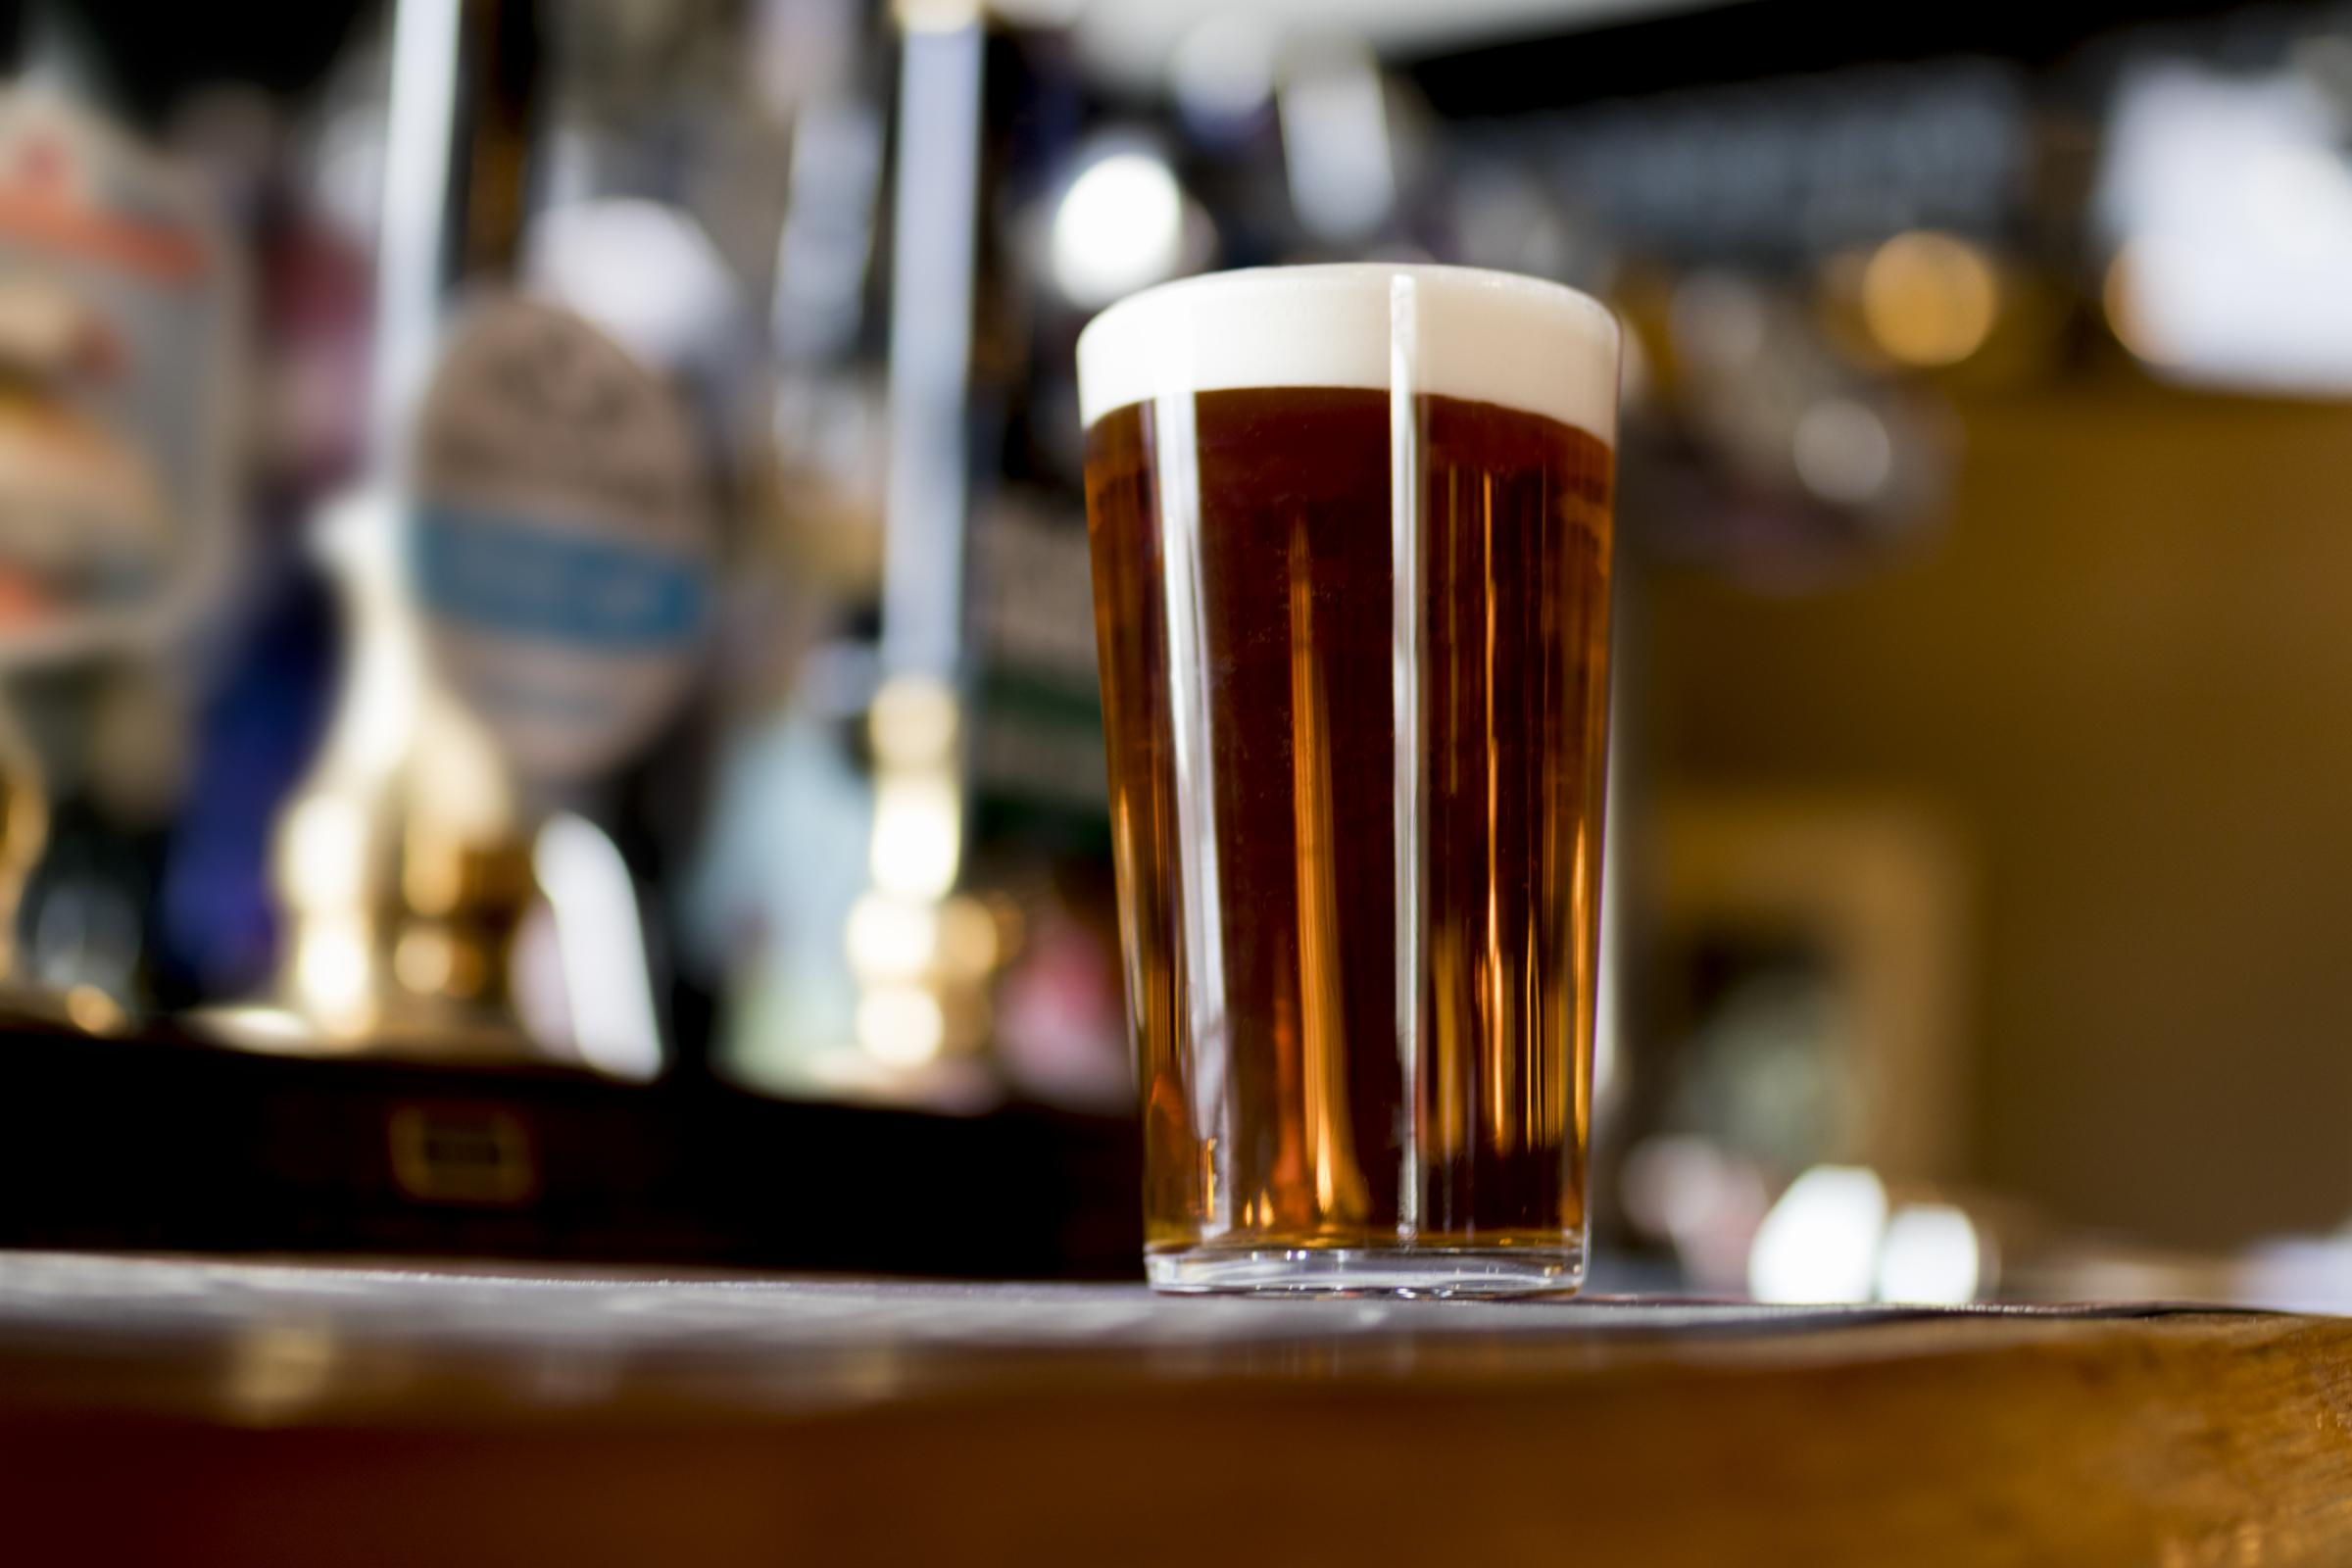 Tell us the best place to have a pint in Swindon